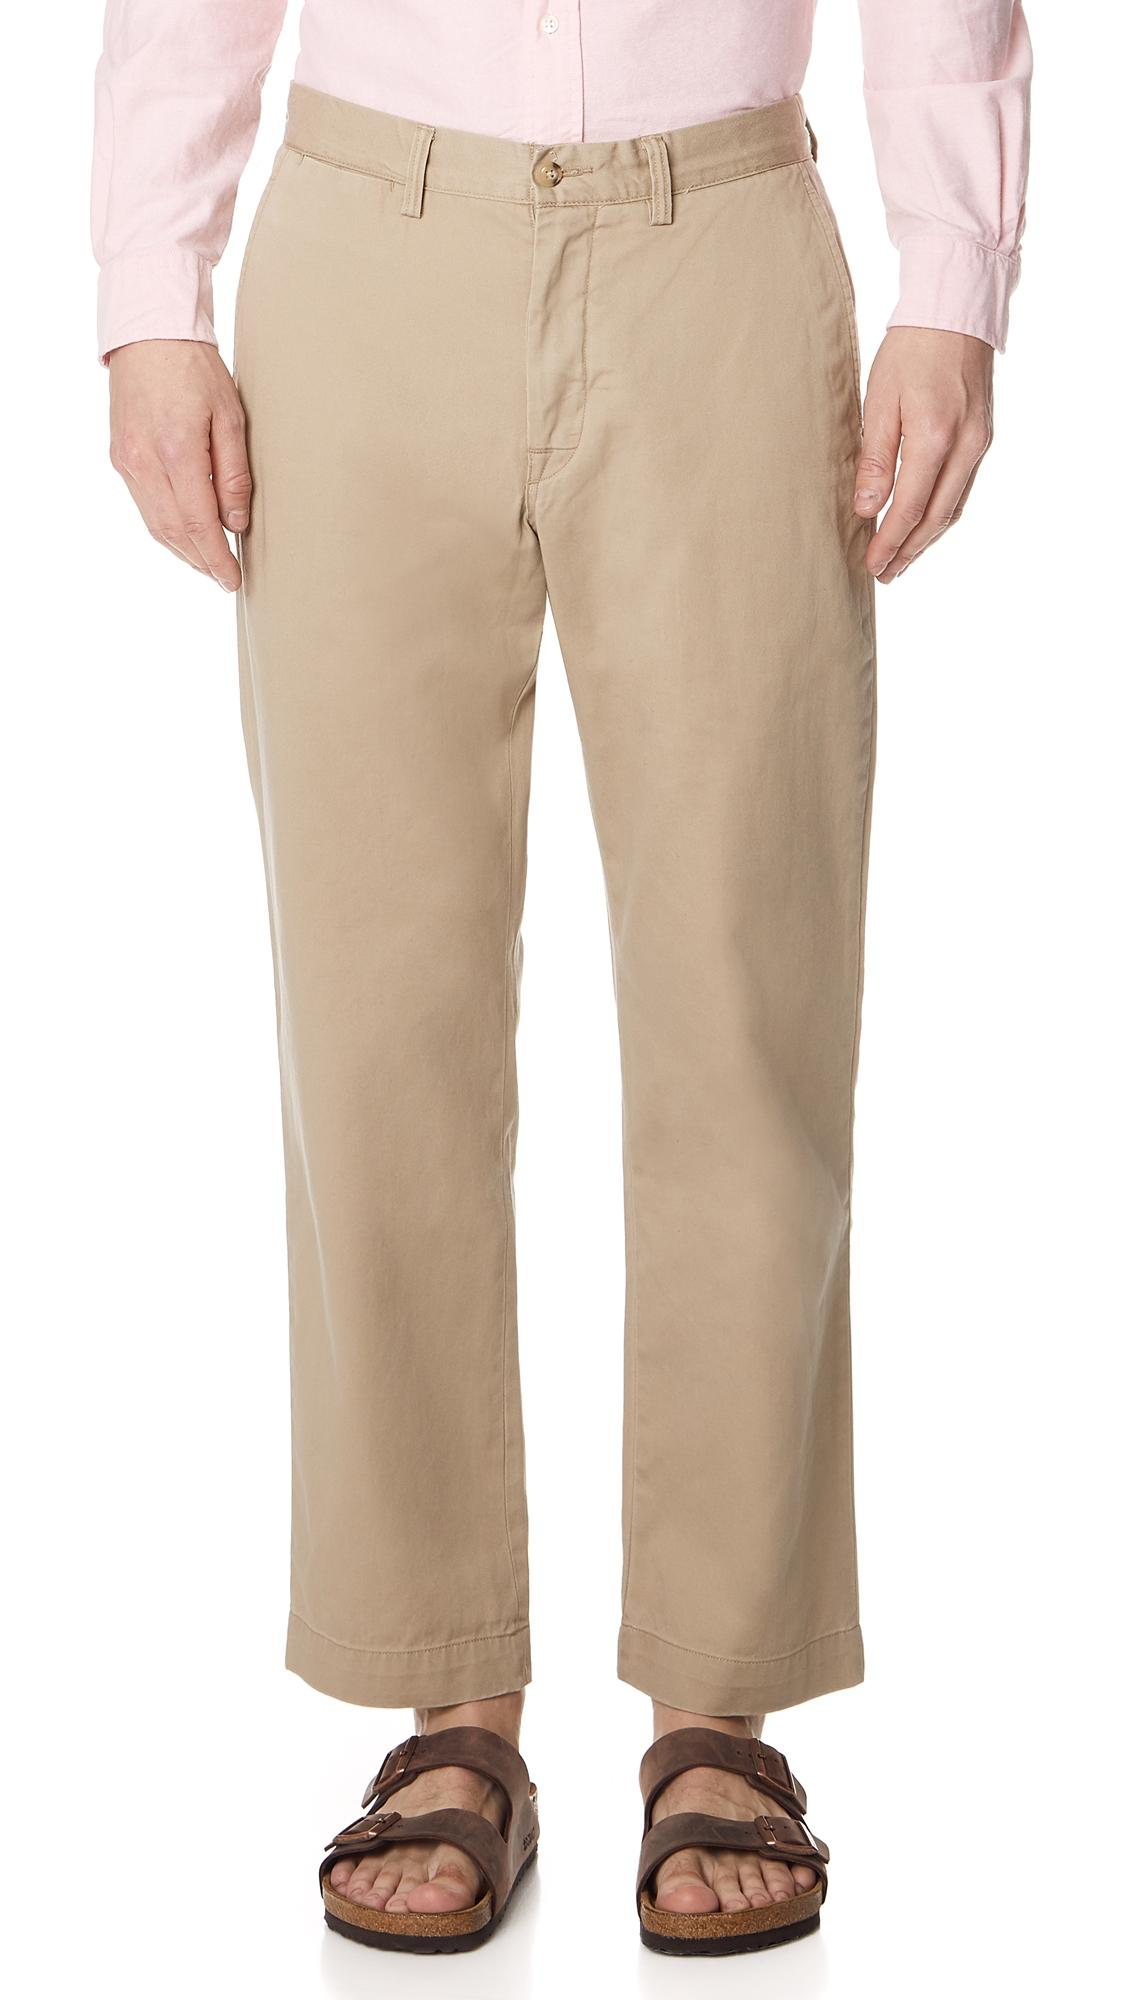 Fit Chino In Tan Pants Classic nOvw80ymN